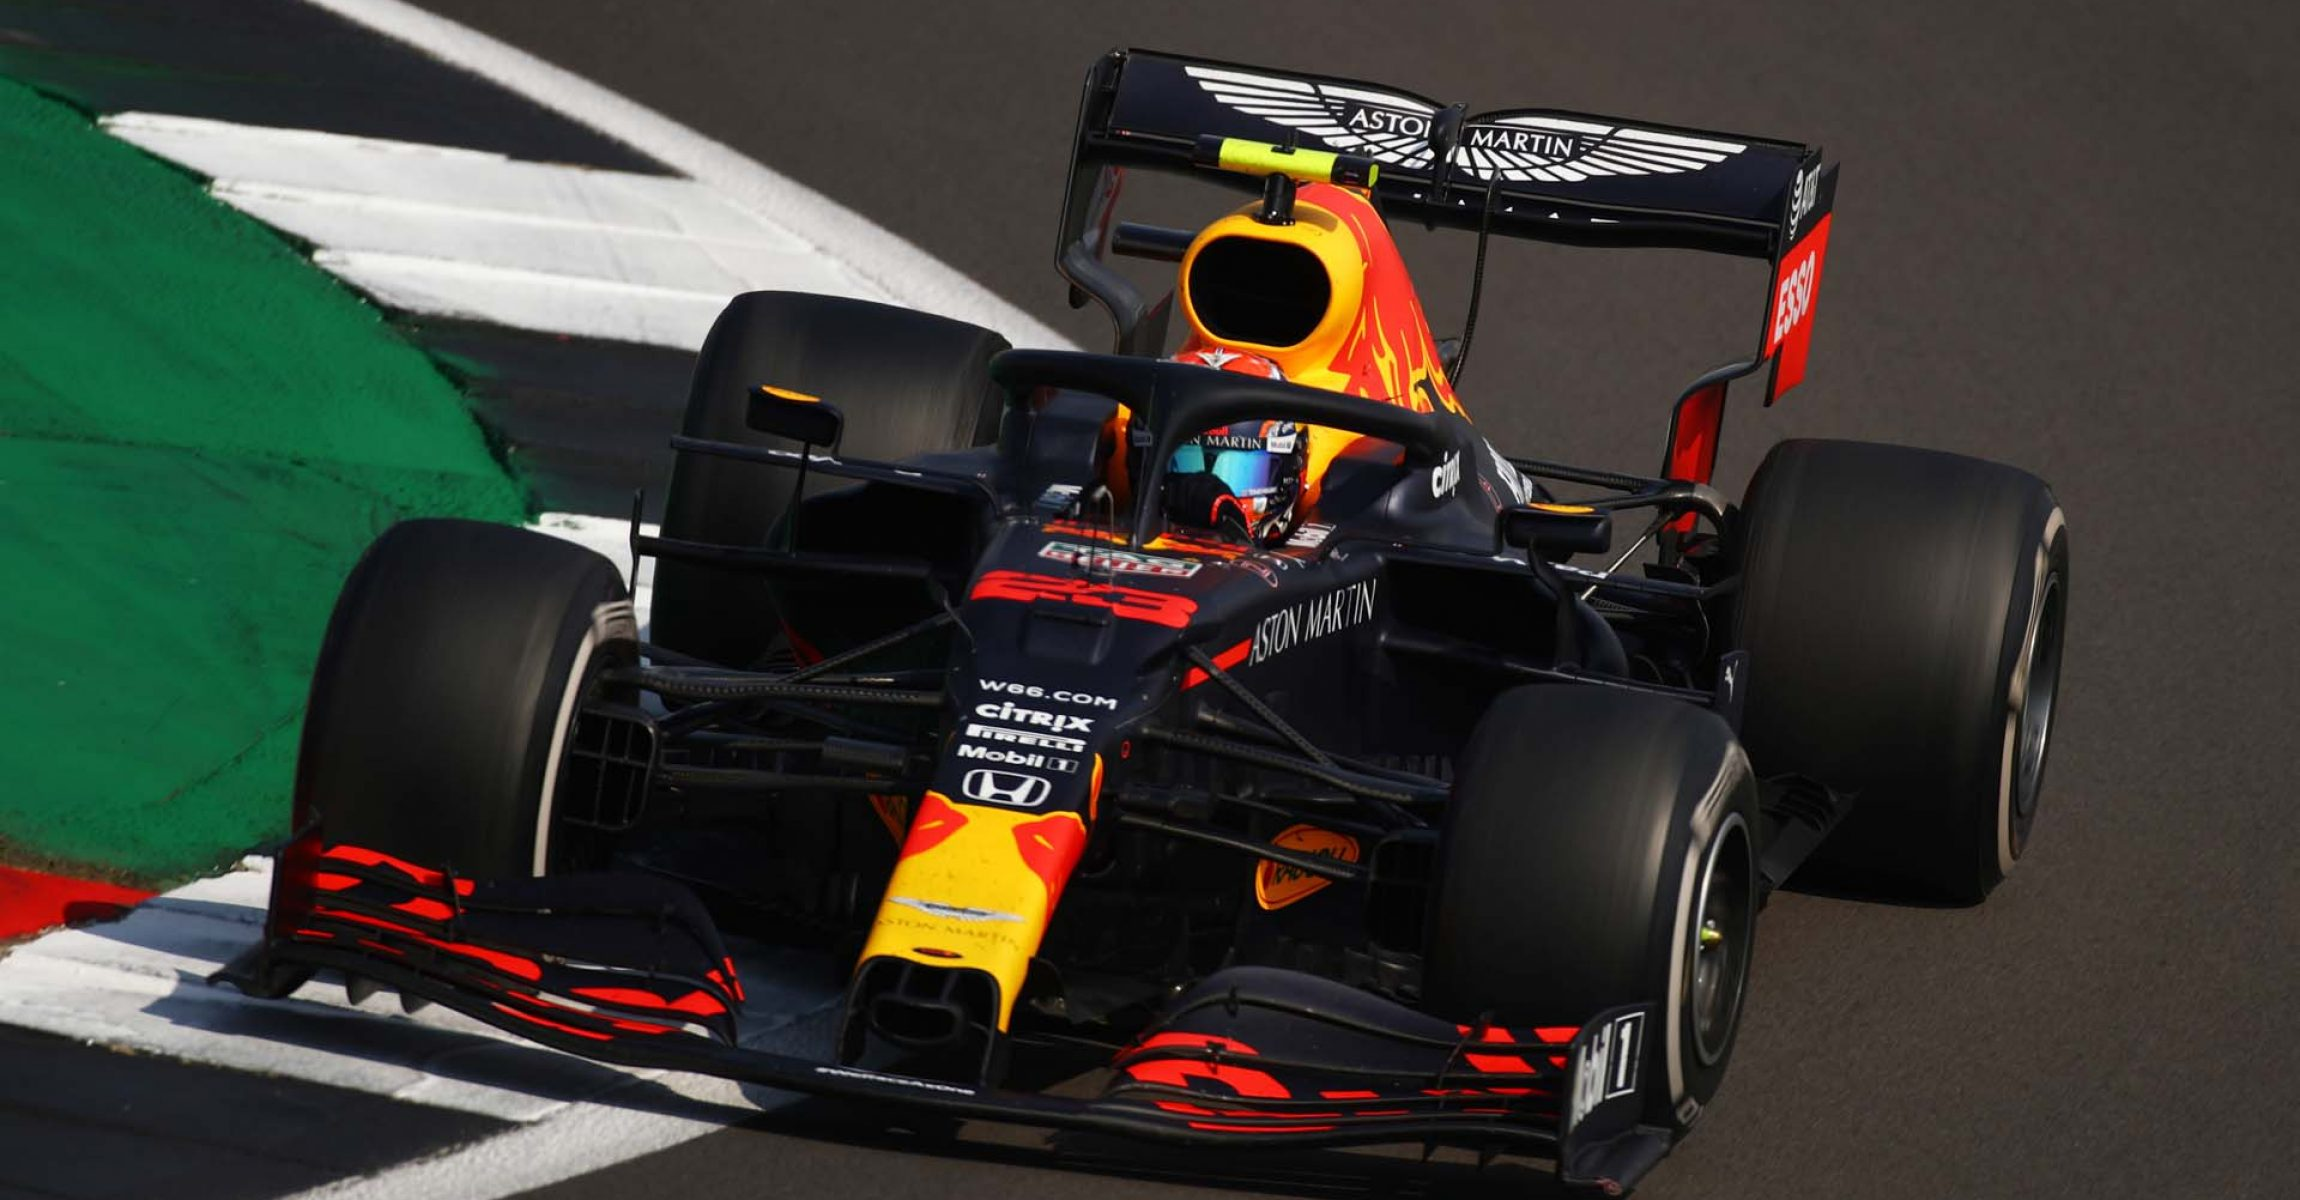 NORTHAMPTON, ENGLAND - AUGUST 09: Alexander Albon of Thailand driving the (23) Aston Martin Red Bull Racing RB16 on track during the F1 70th Anniversary Grand Prix at Silverstone on August 09, 2020 in Northampton, England. (Photo by Bryn Lennon/Getty Images)